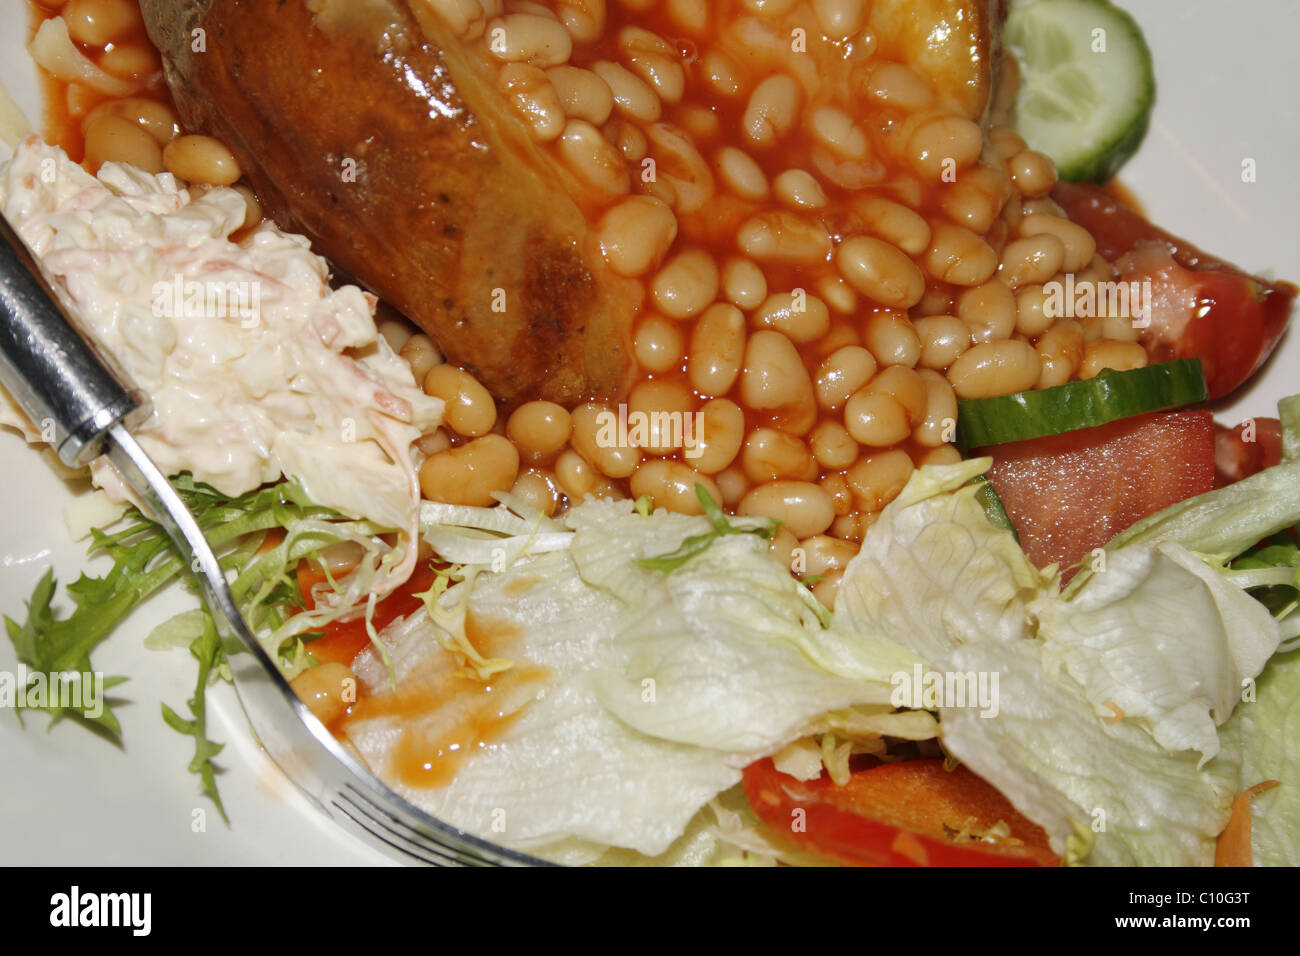 Cheese And Beans Jacket Potato With Salad Stock Photo 35048044 Alamy